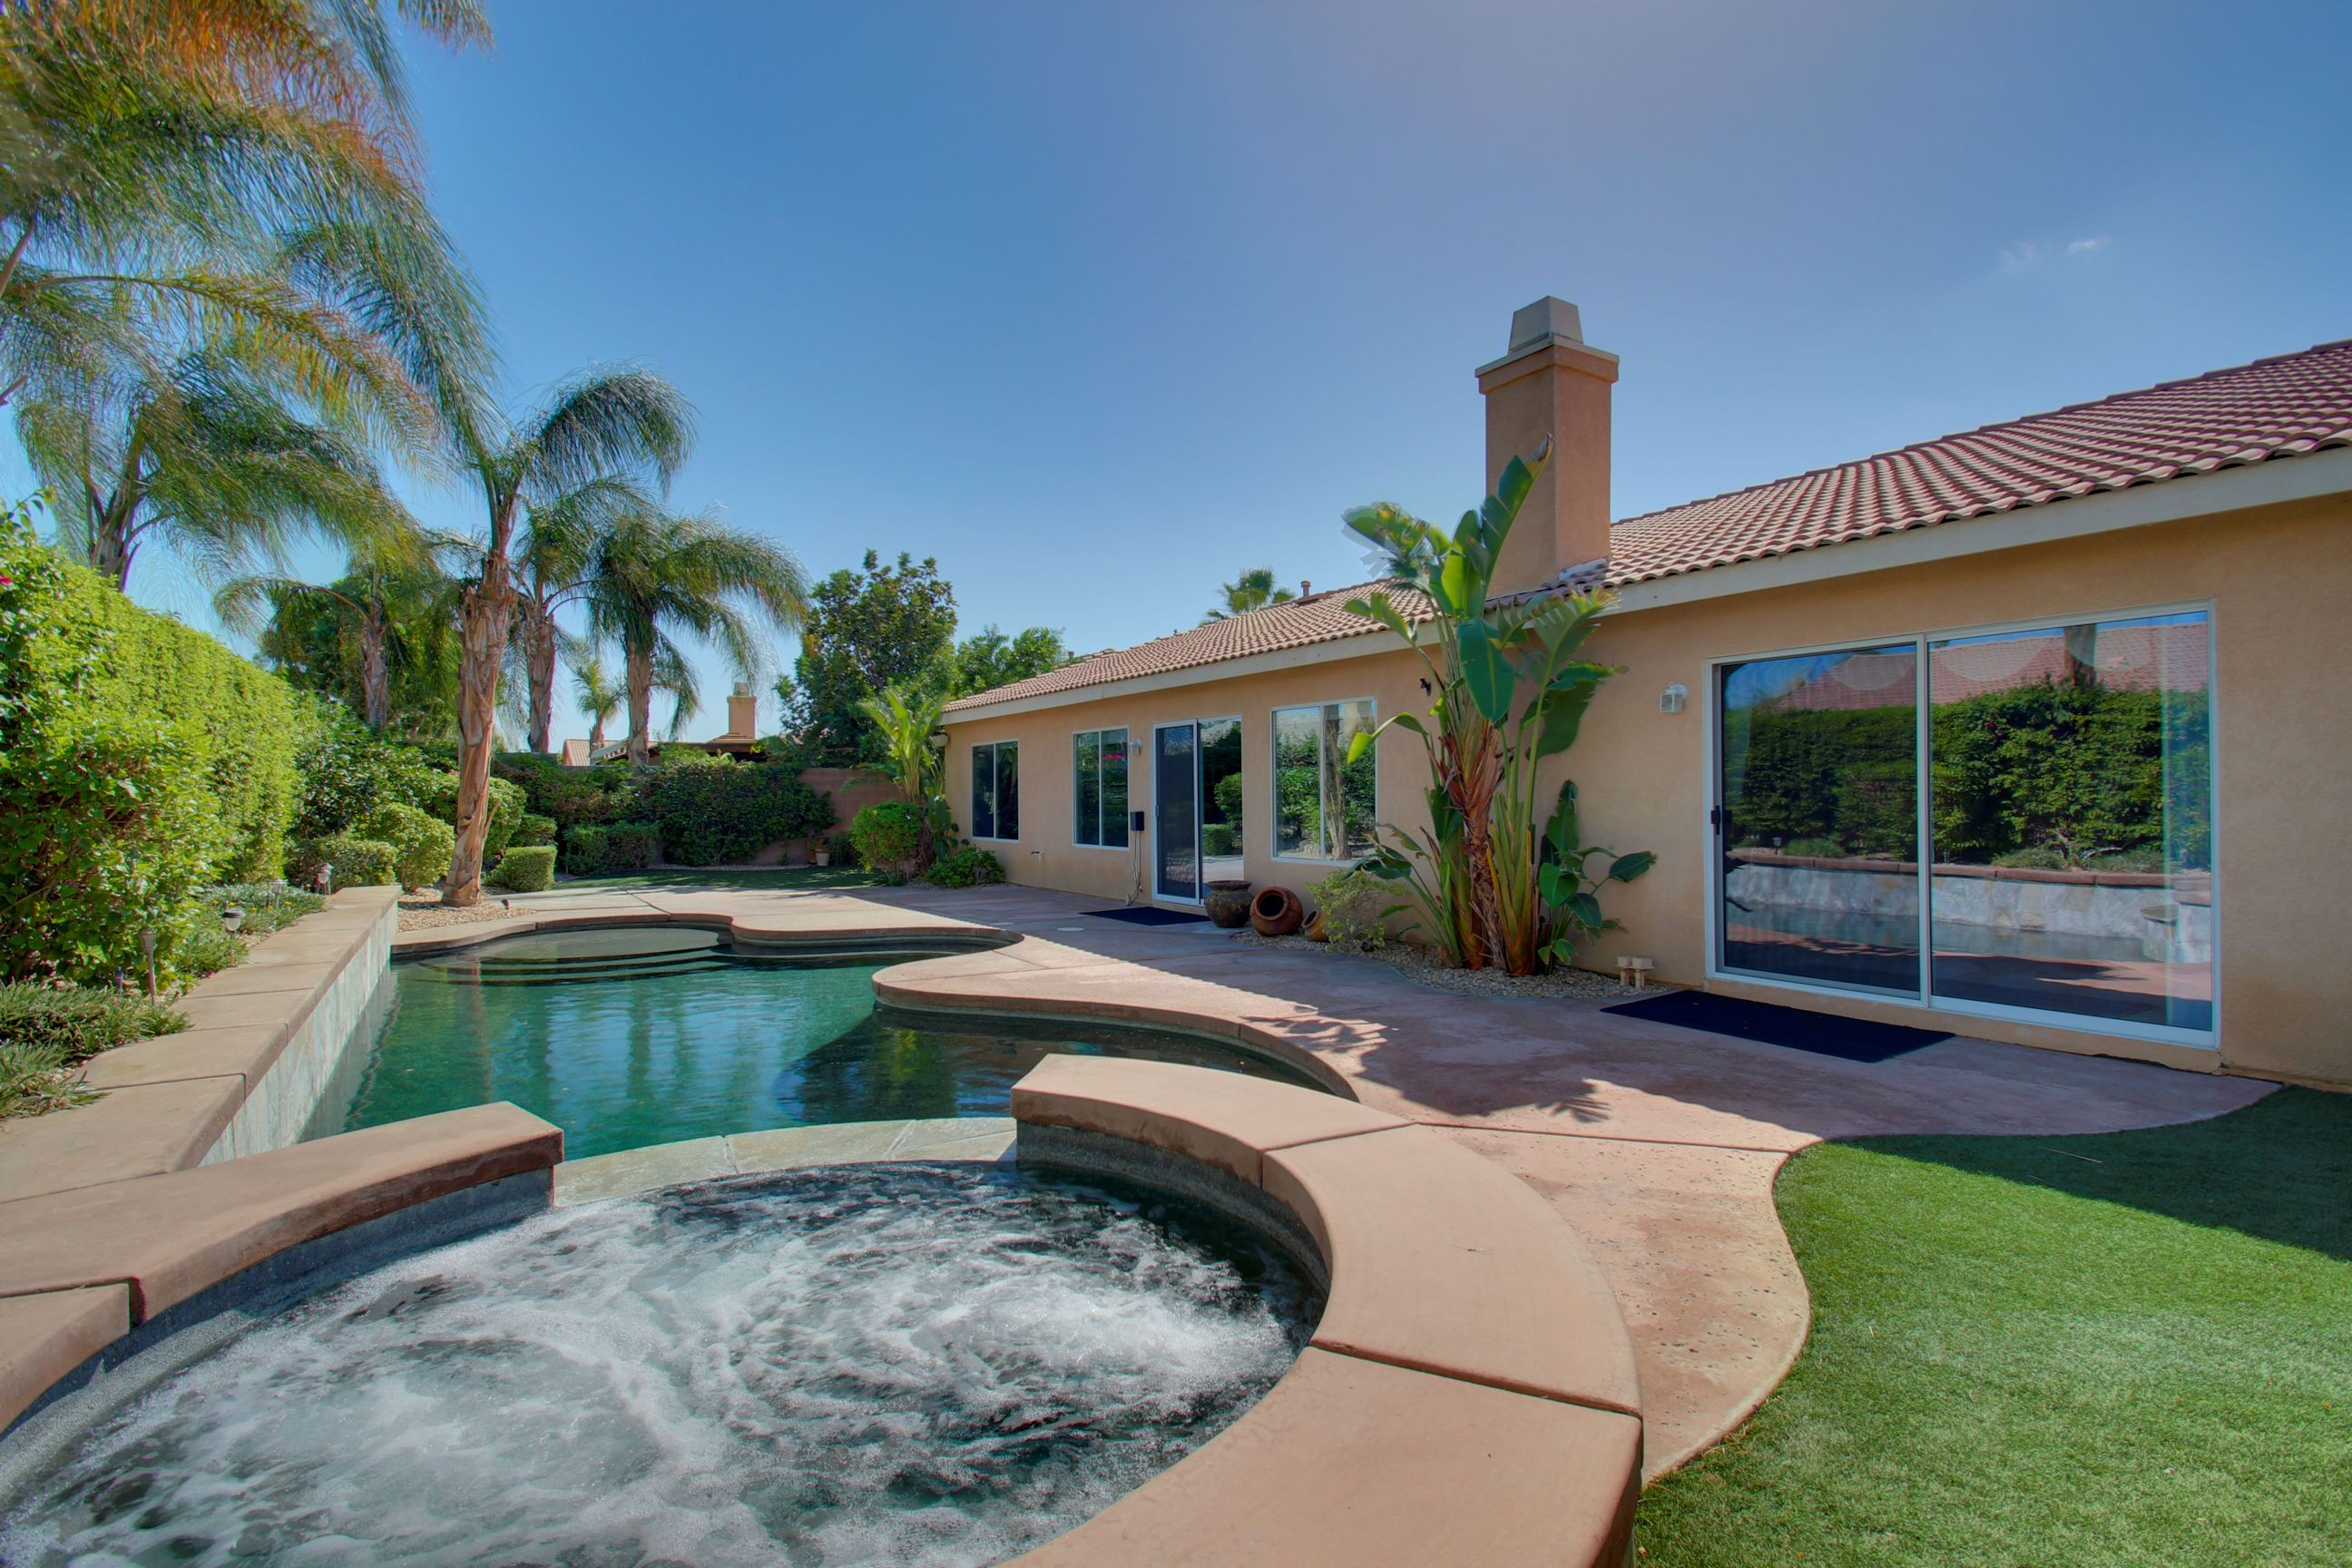 Fullsize Of Houses With Pools